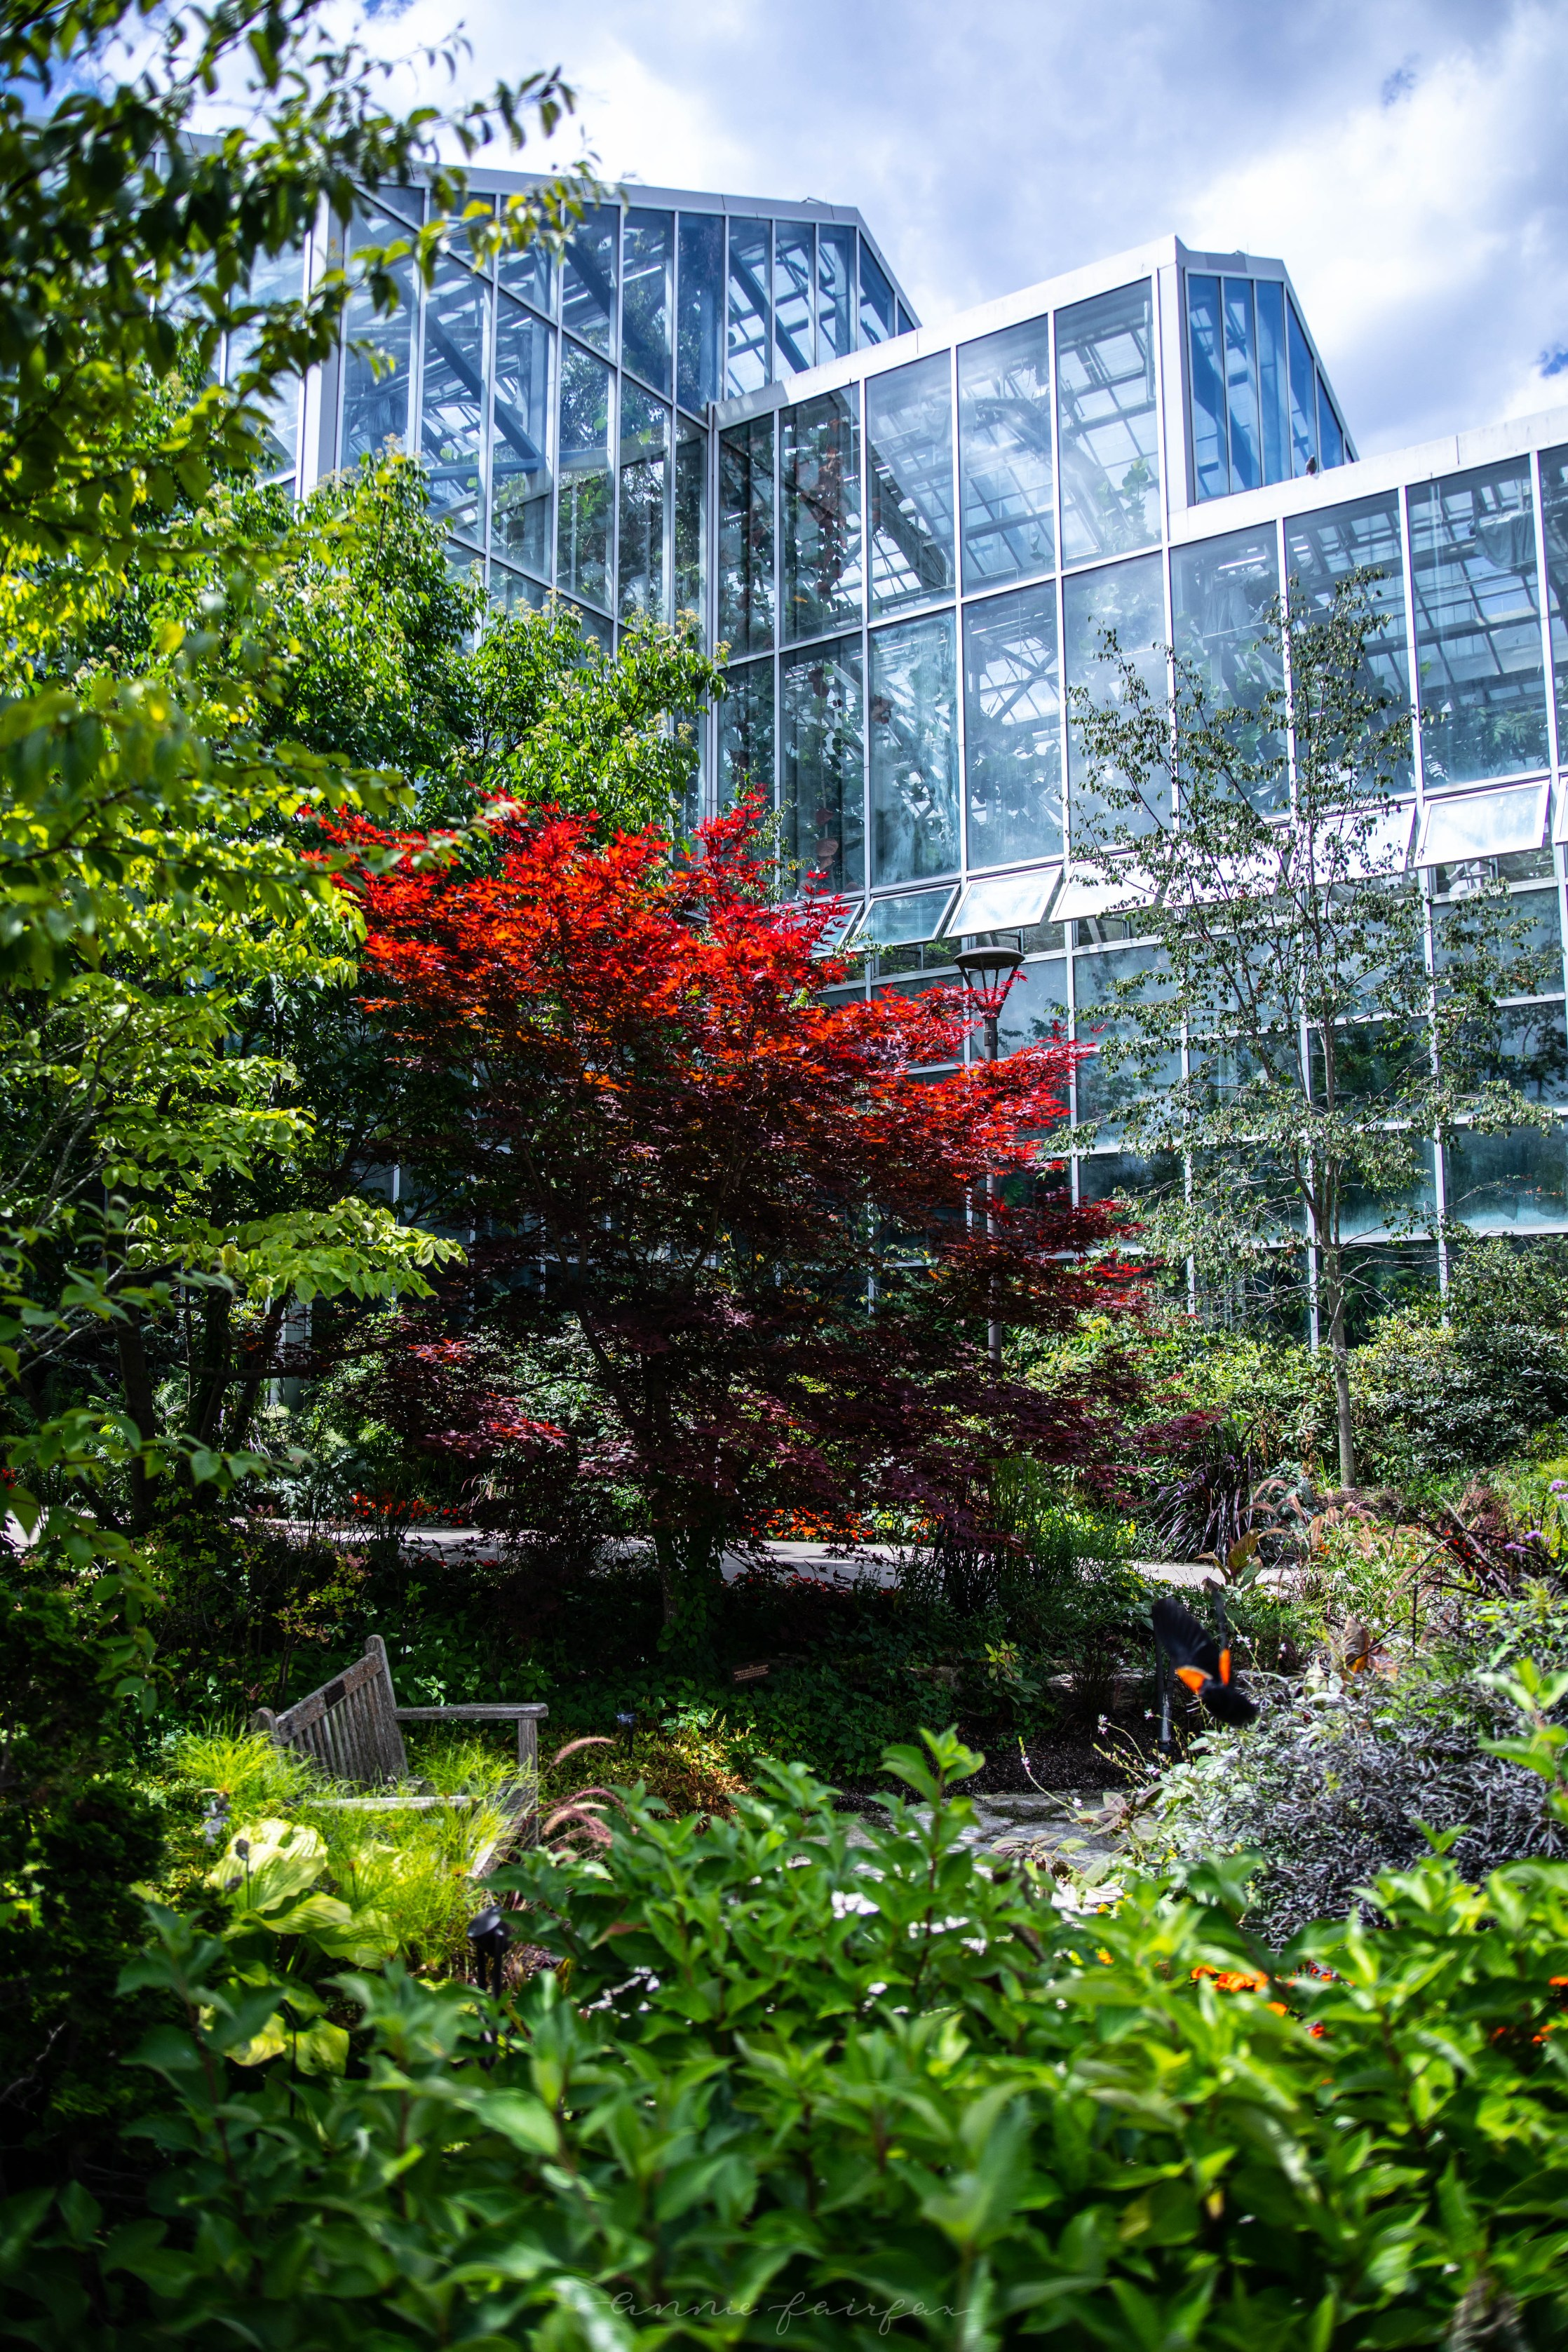 The Complete Traveler's Guide to Grand Rapids, Michigan What to Do in Grand Rapids Frederik Meijer Gardens